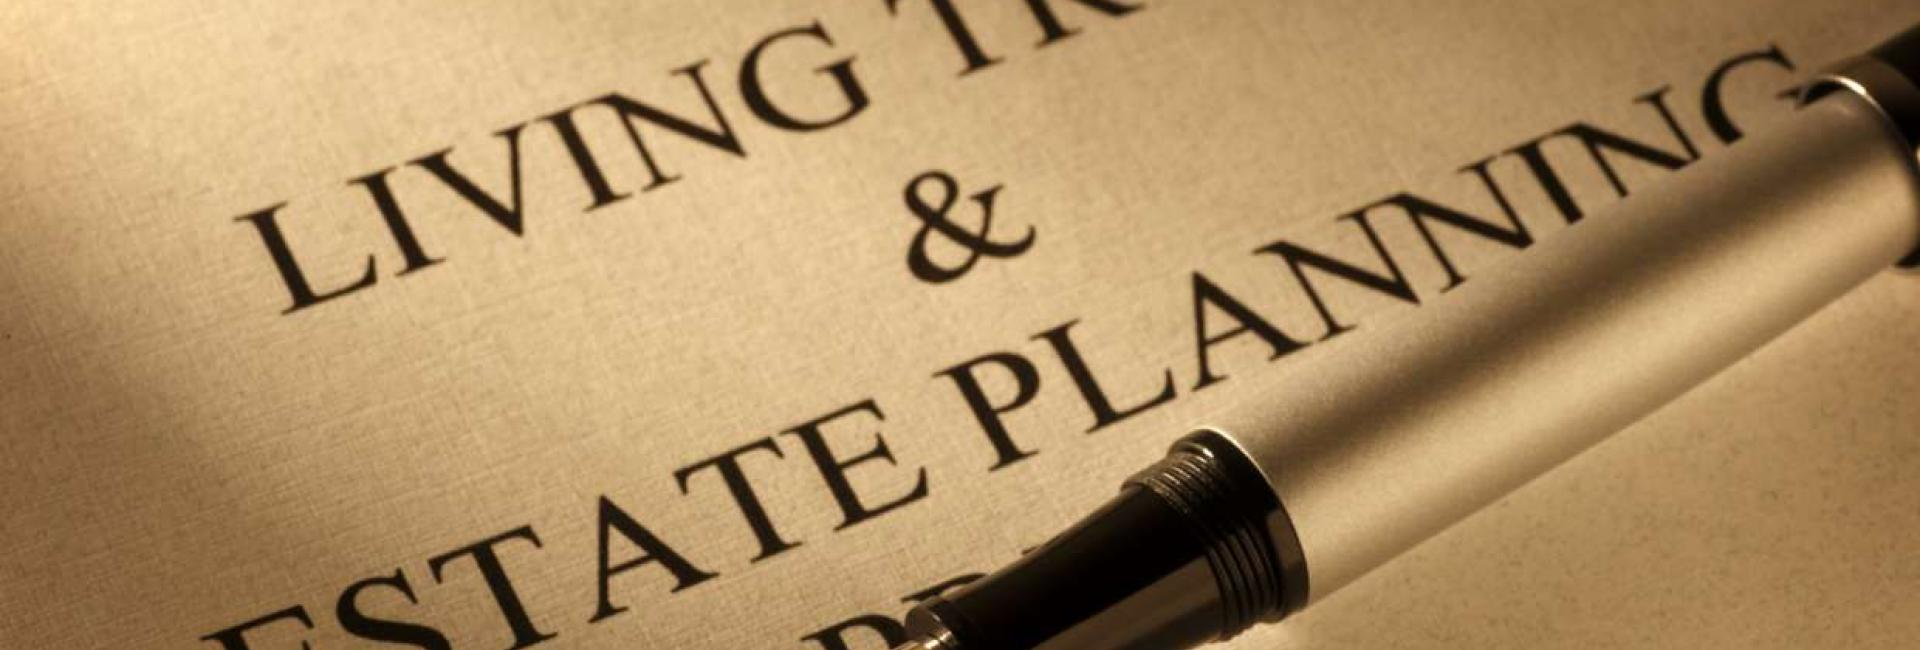 Wills, Trusts, & Probate